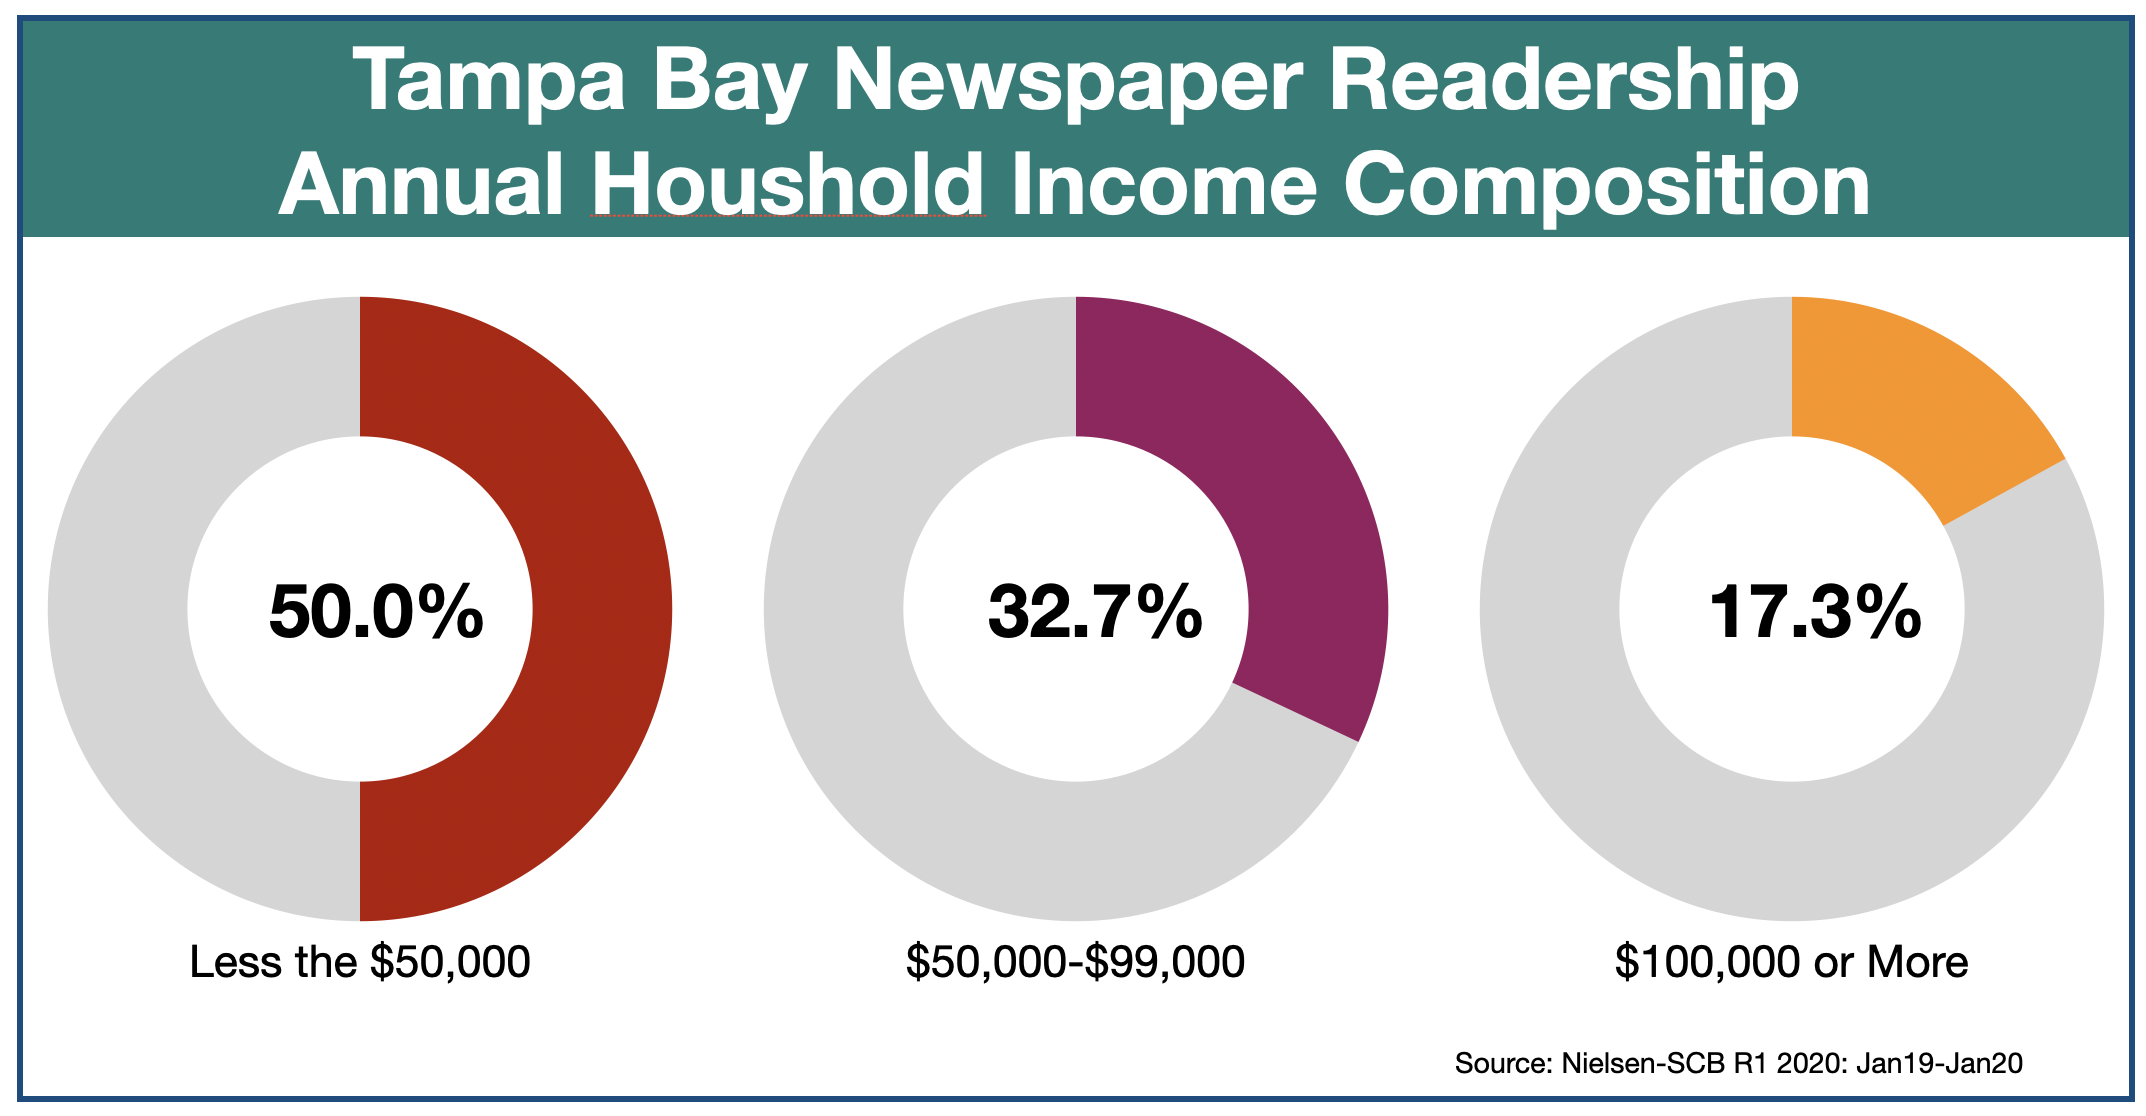 Newspaper Advertising in Tampa Bay Income of Readers